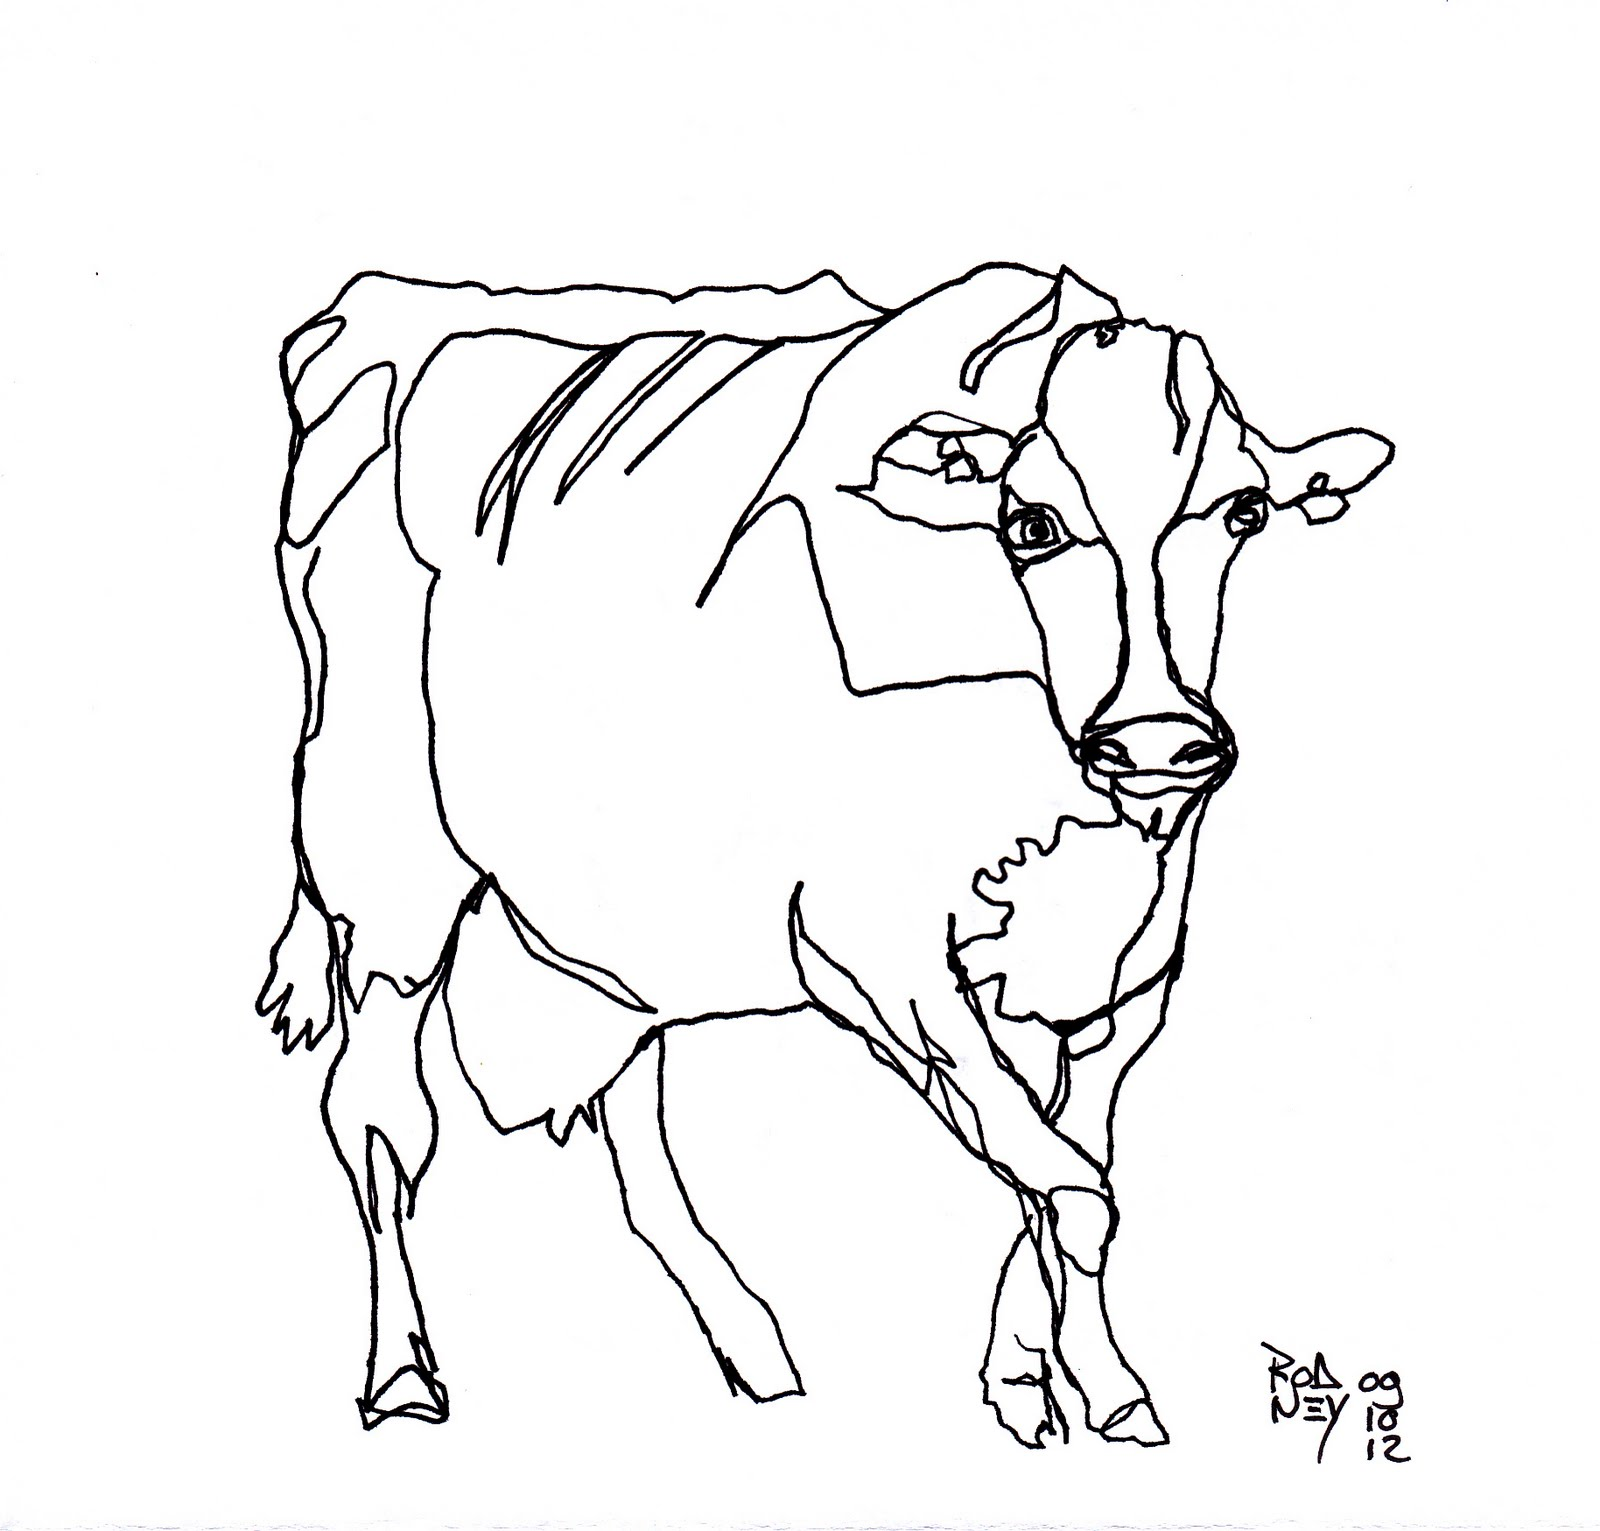 Contour Line Drawings Of Animals : Rodney van den beemd continuous cow